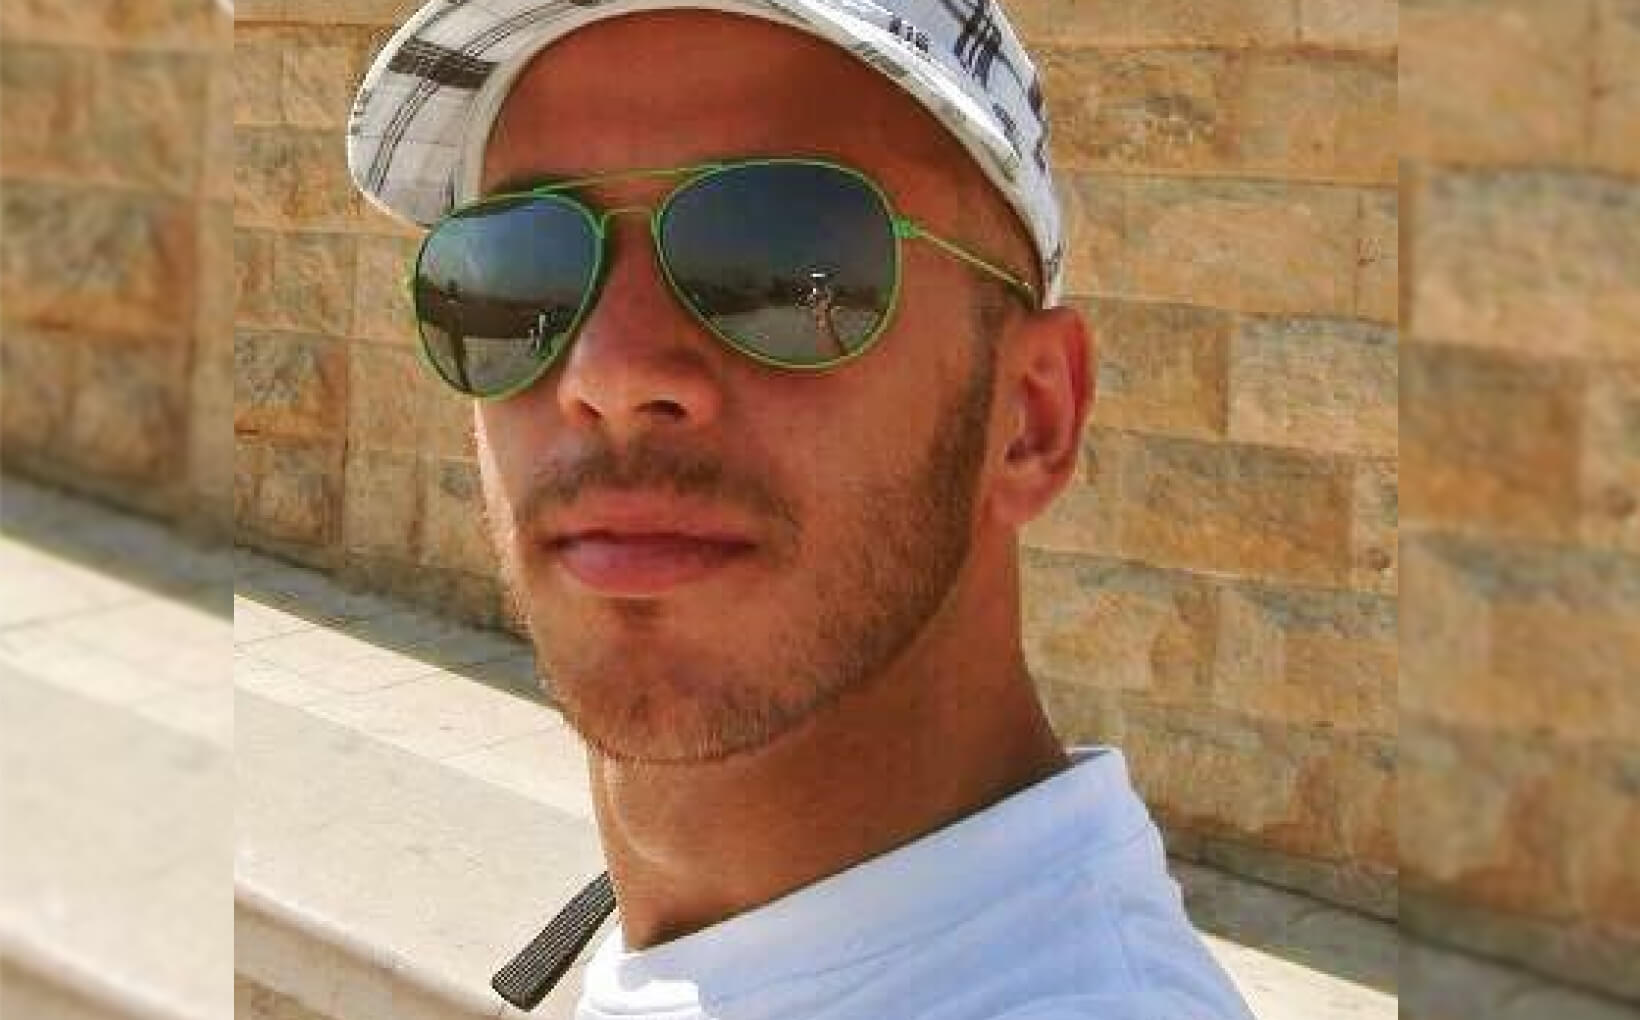 Closeup picture of Riccardo posing for the camera. He's outside in the sunshine and is wearing big green sunglasses and a white and black cap.